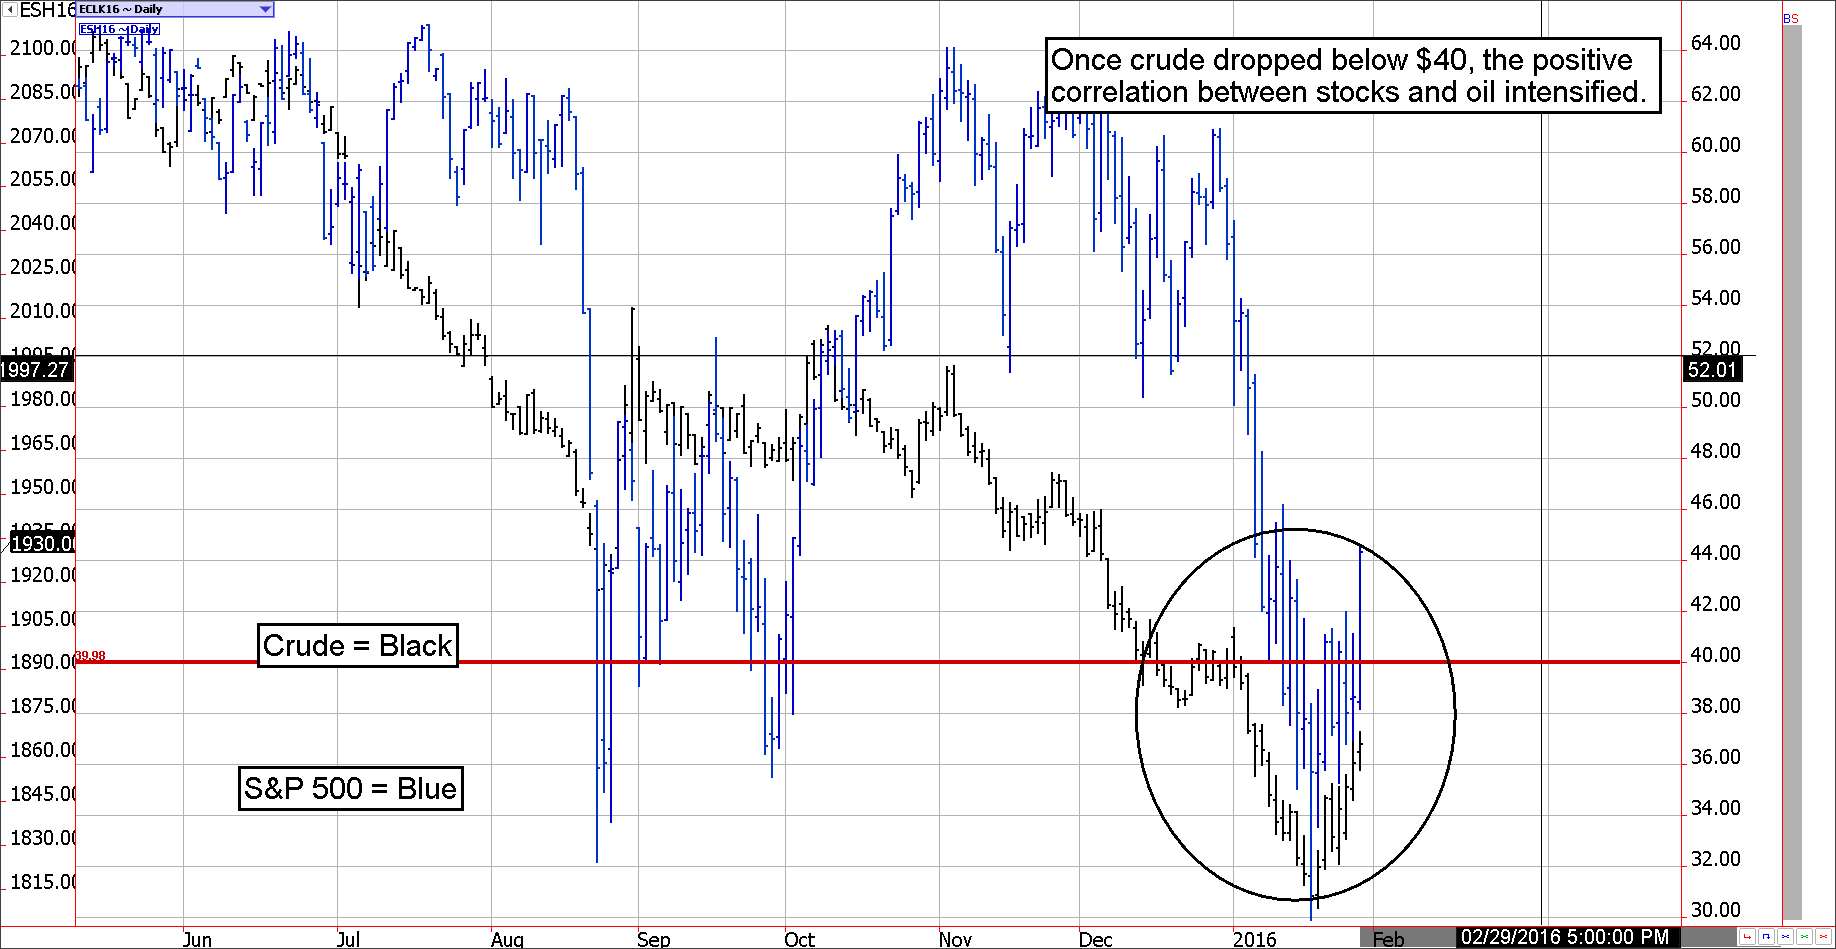 Decoupling of stocks and crude oil futures